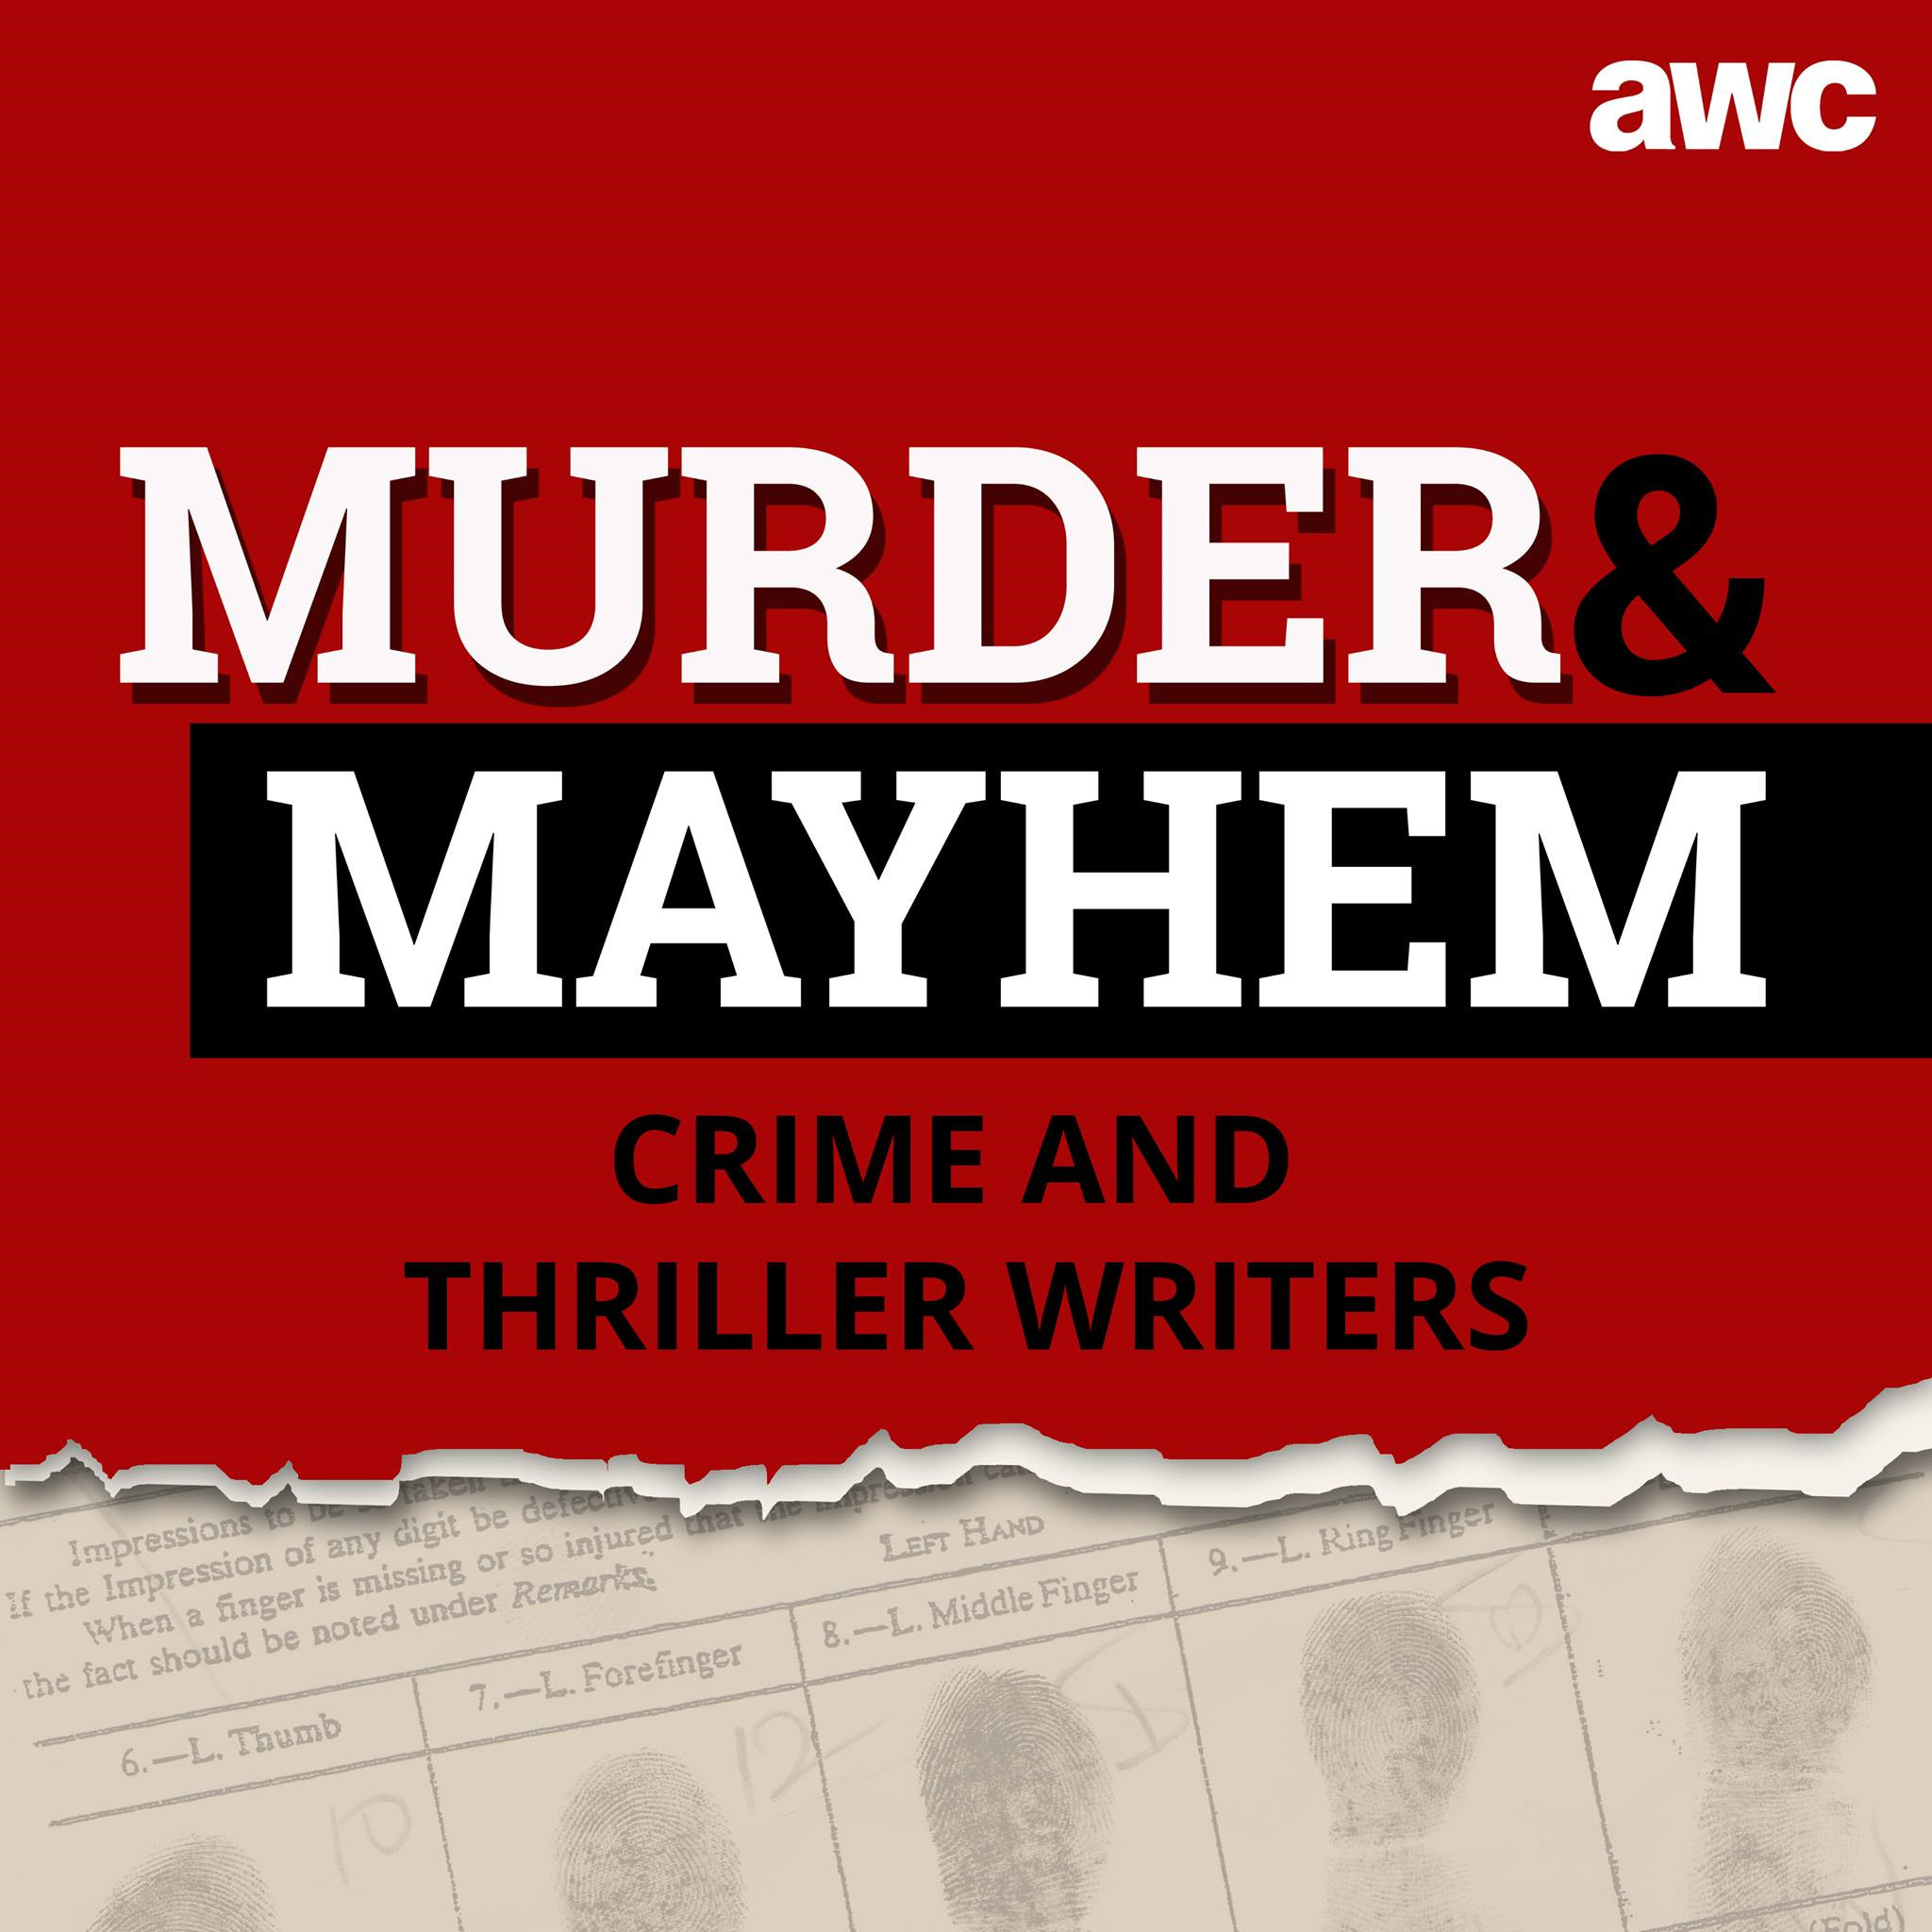 MURDER MAYHEM 28: Drew Chapman is the American crime author of The King of Fear and The Ascendant. @AndrewDChapman